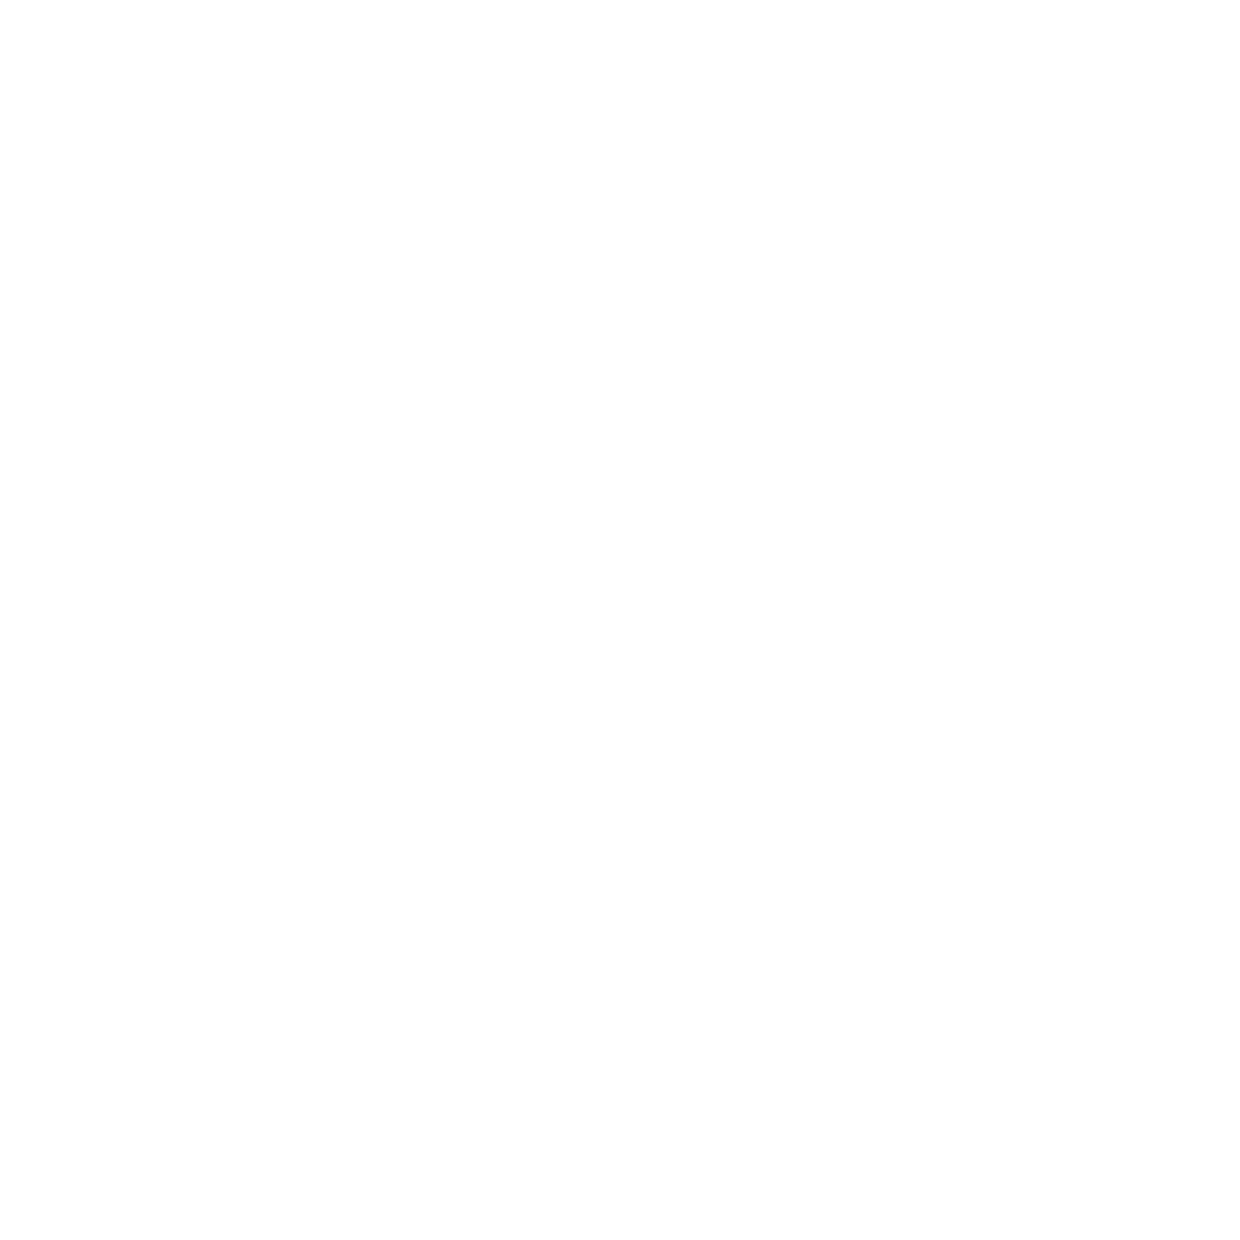 Veggie--Raspberry-Lime-Coconut | nüber food limited